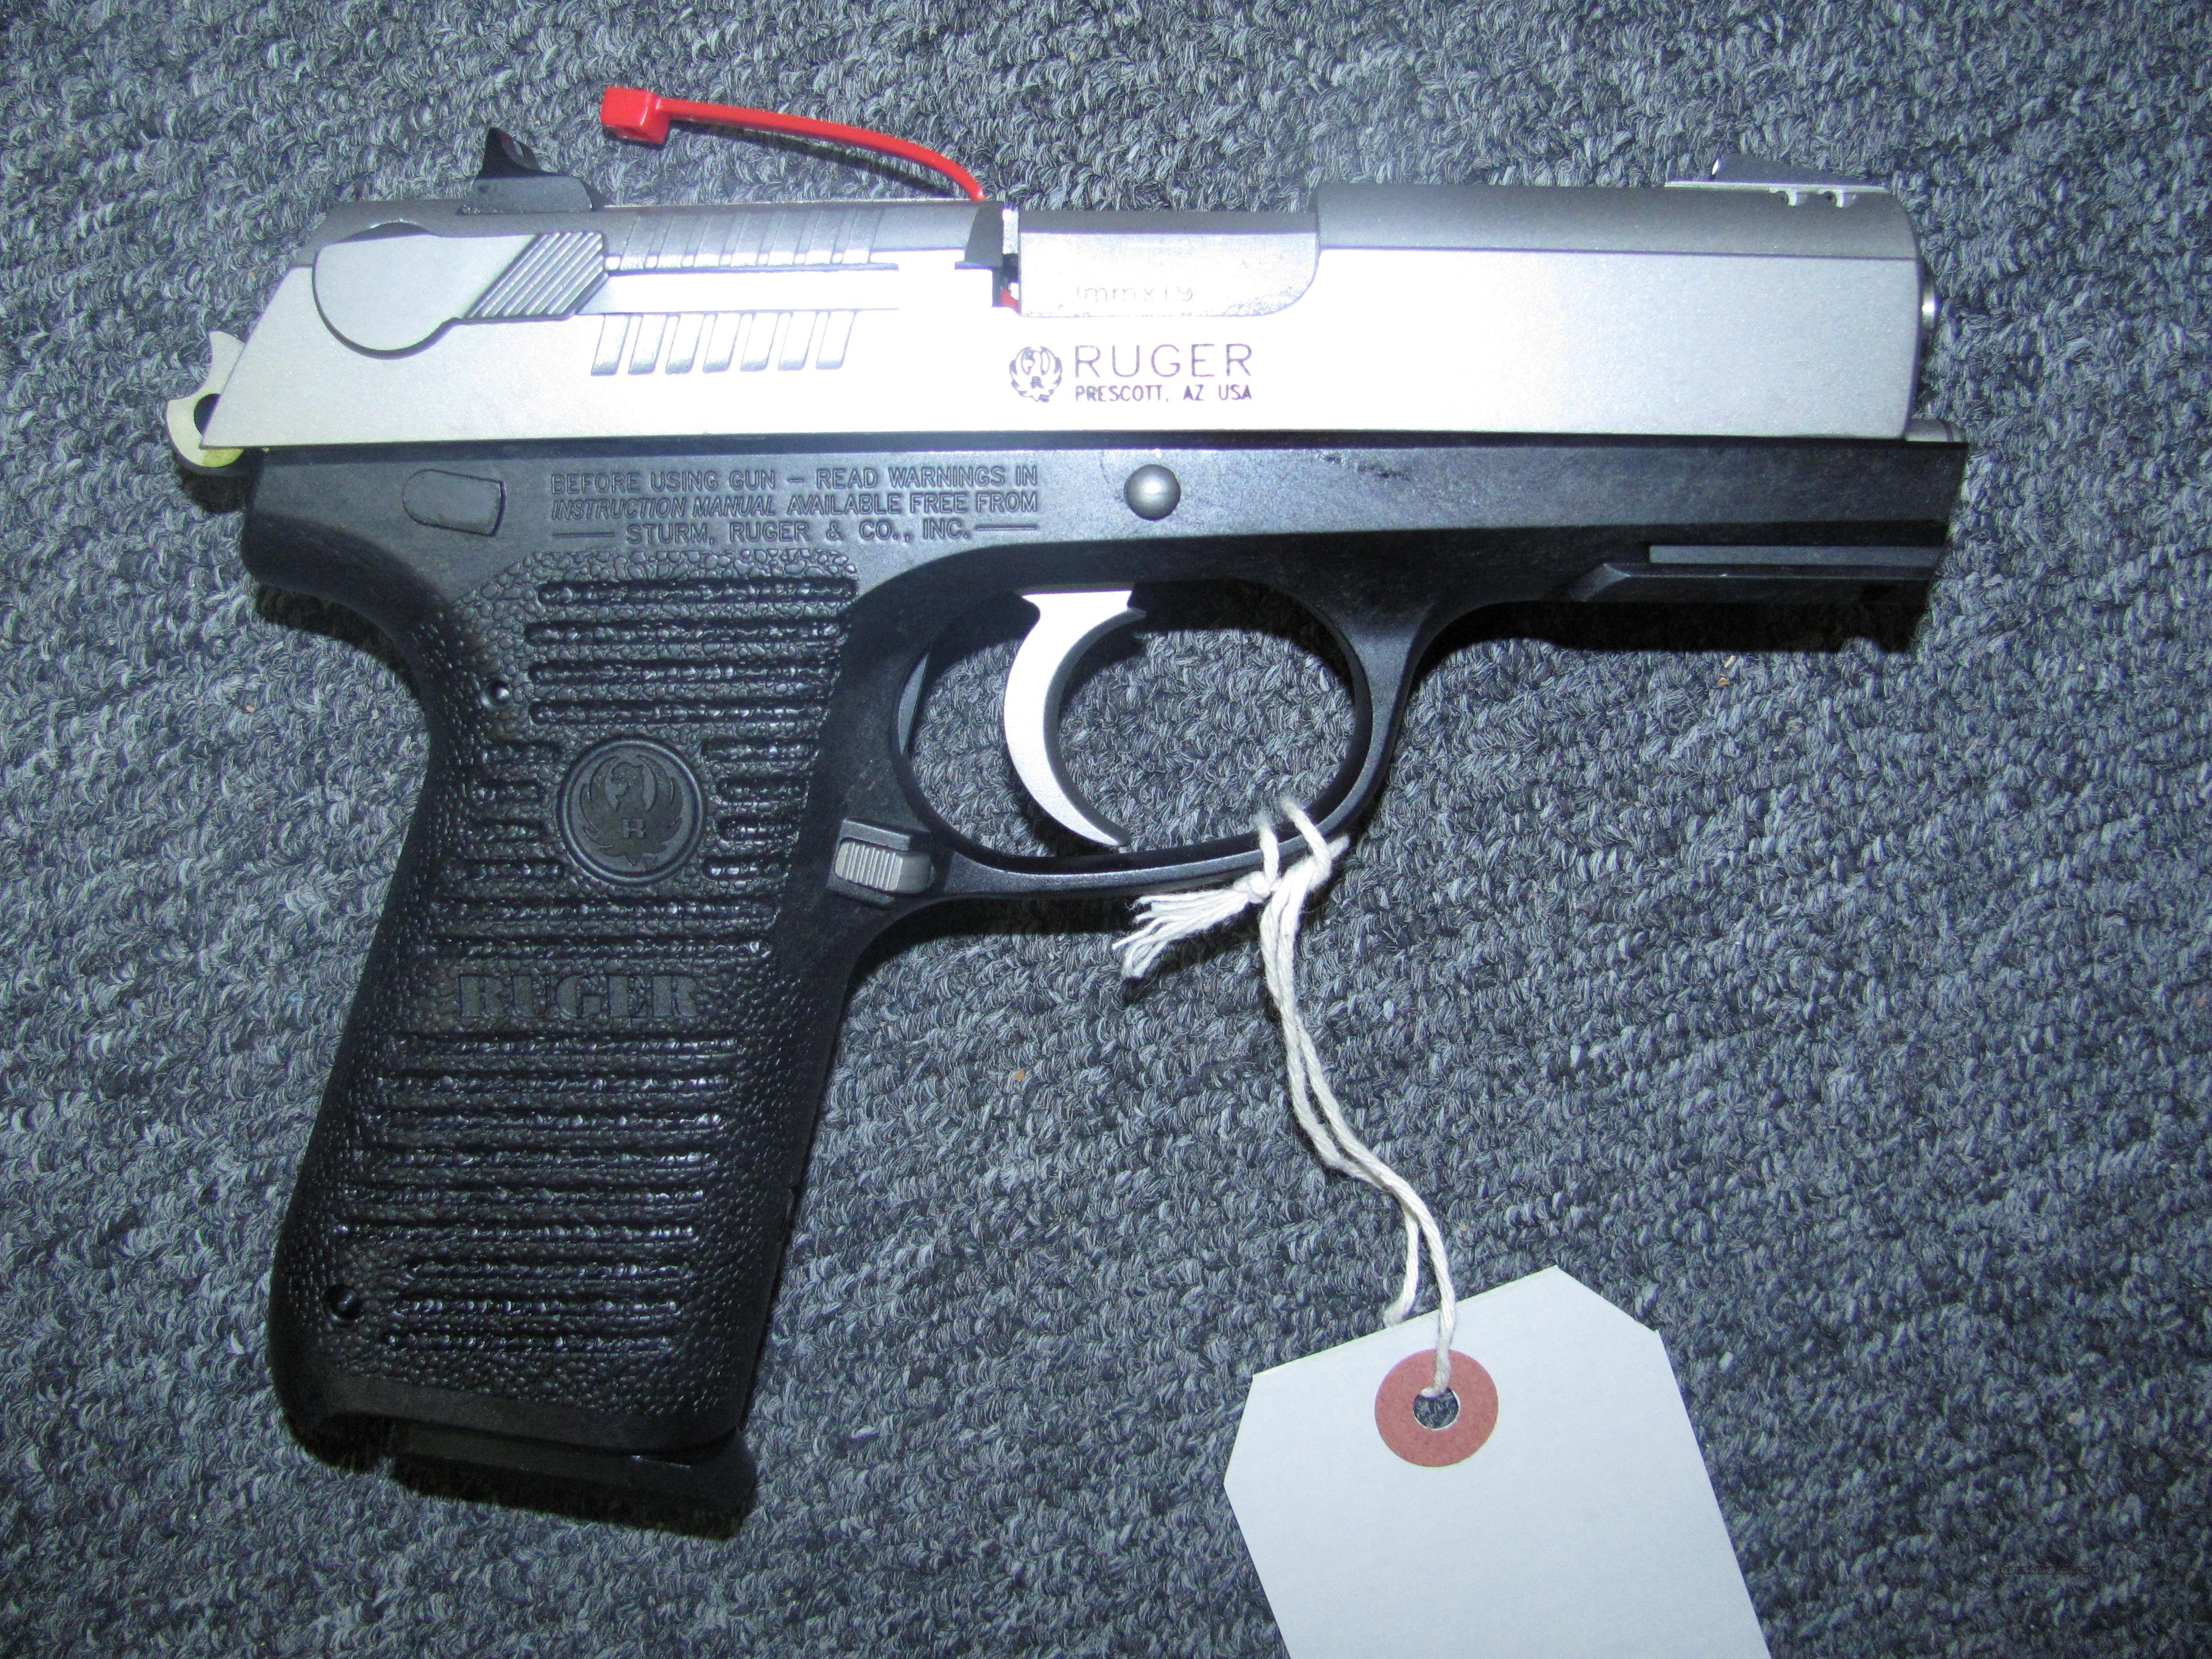 P95 w/2 15 rd mags  Guns > Pistols > Ruger Semi-Auto Pistols > P-Series